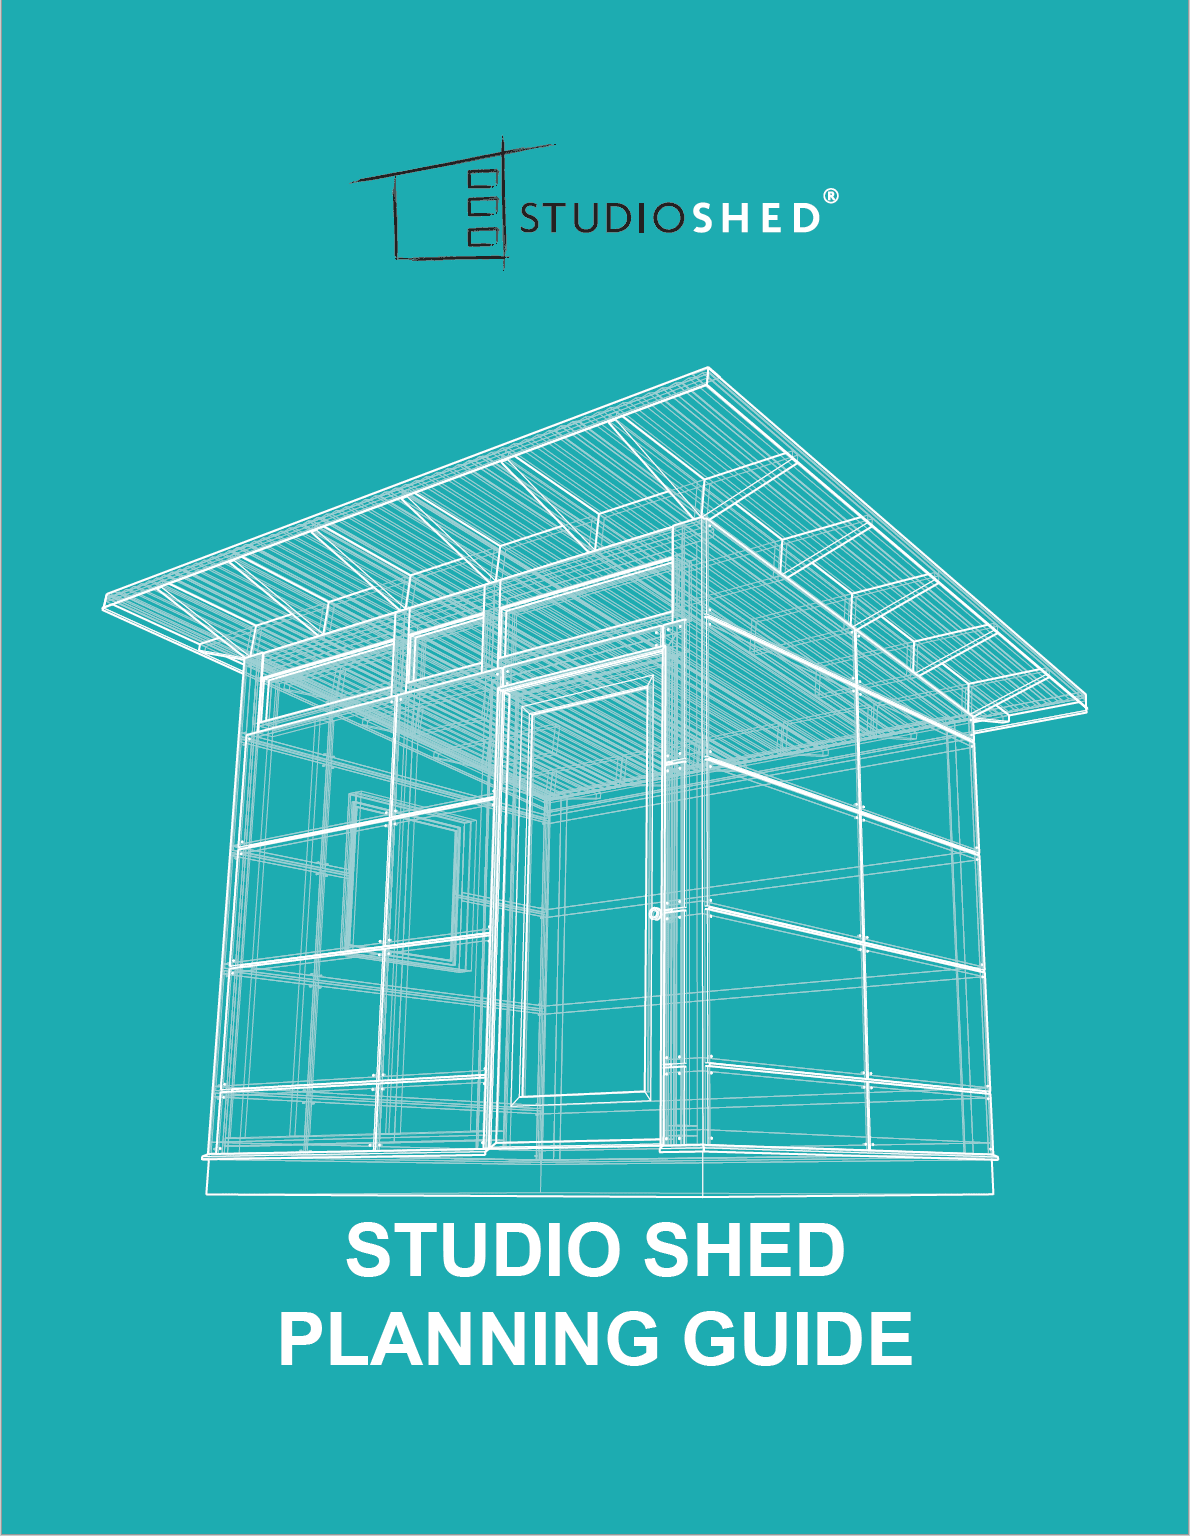 Studio Shed Planning Guide